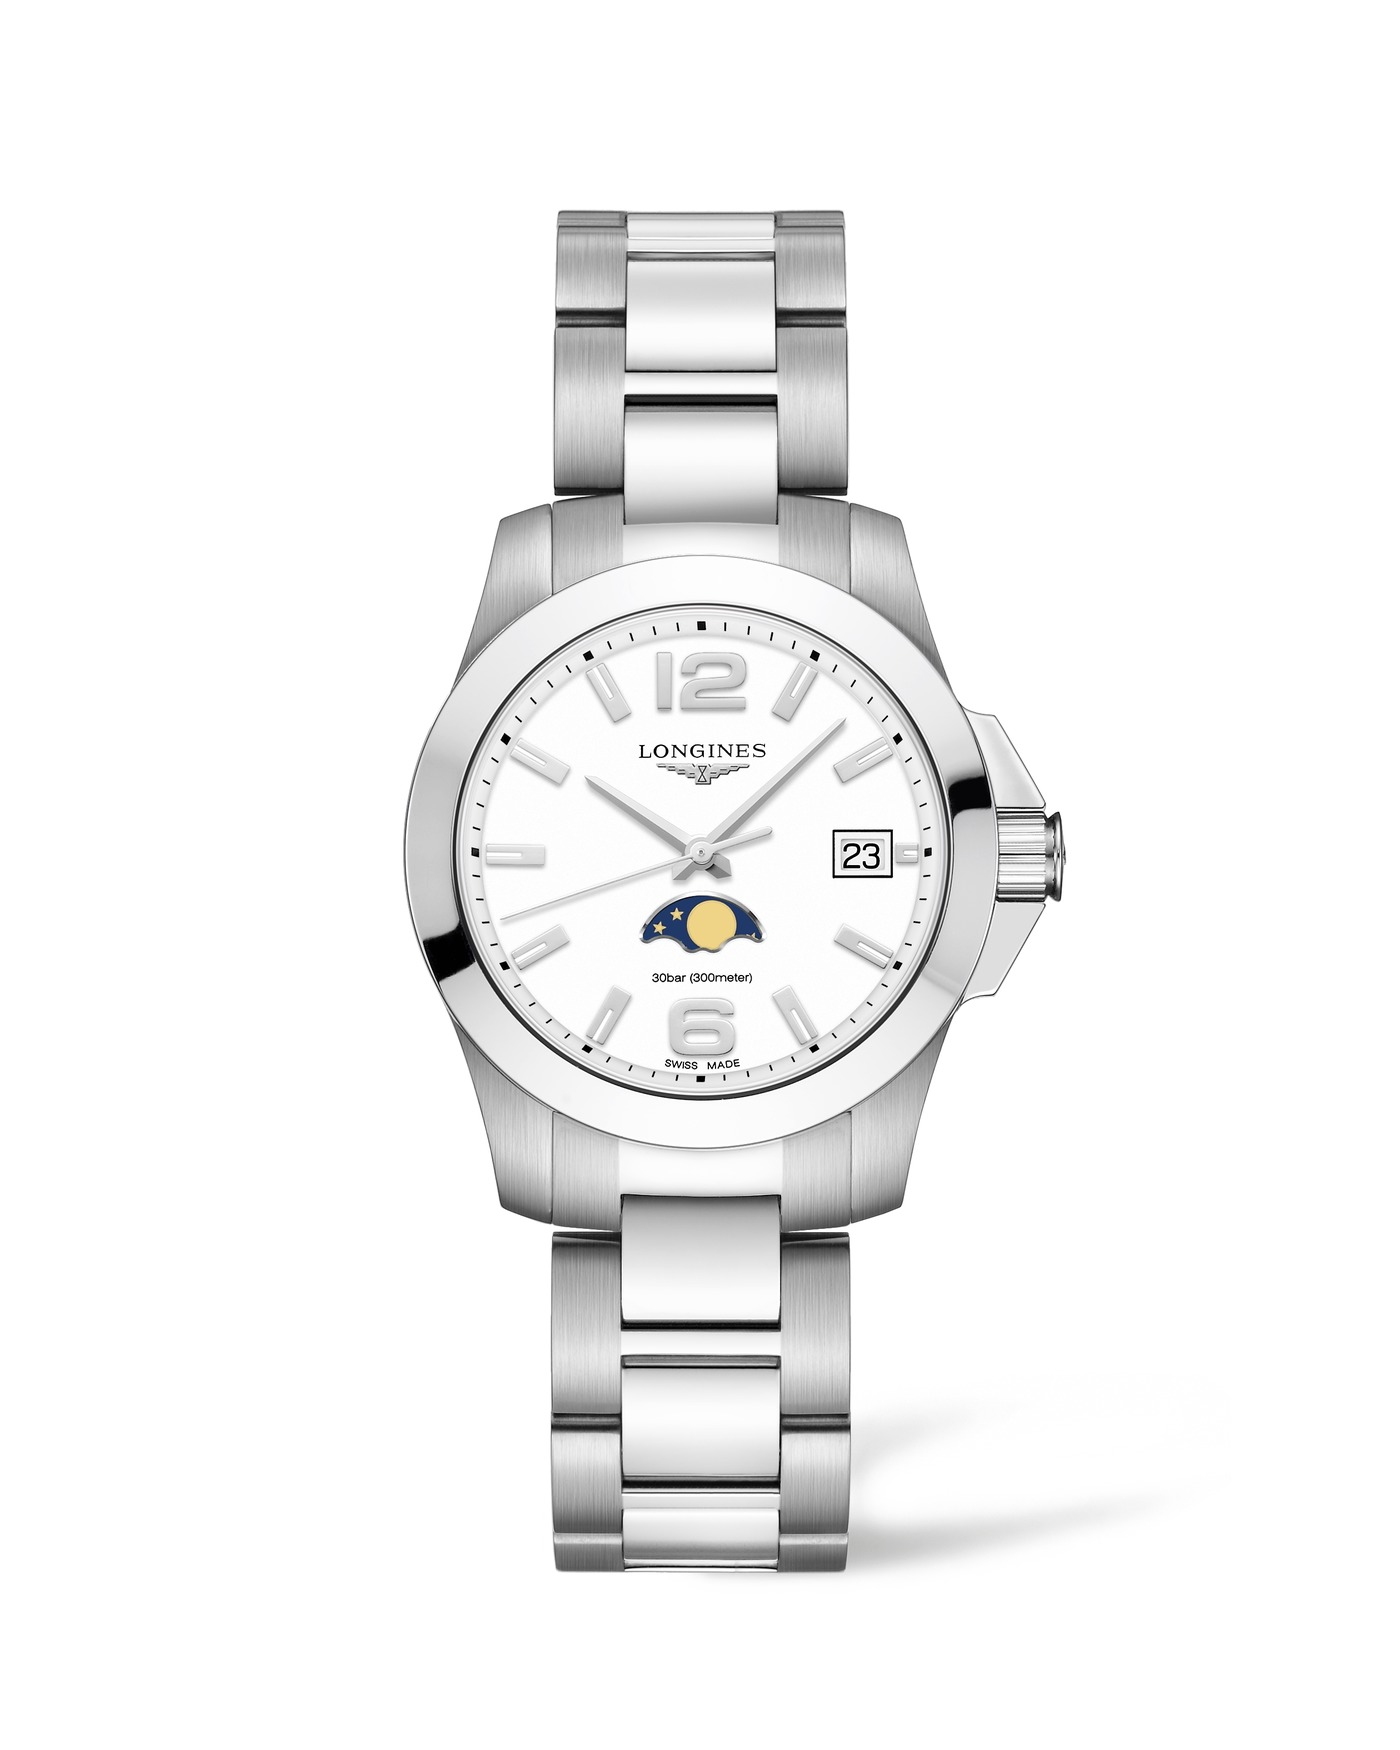 Longines Conquest Moonphase Ladies Watch 1